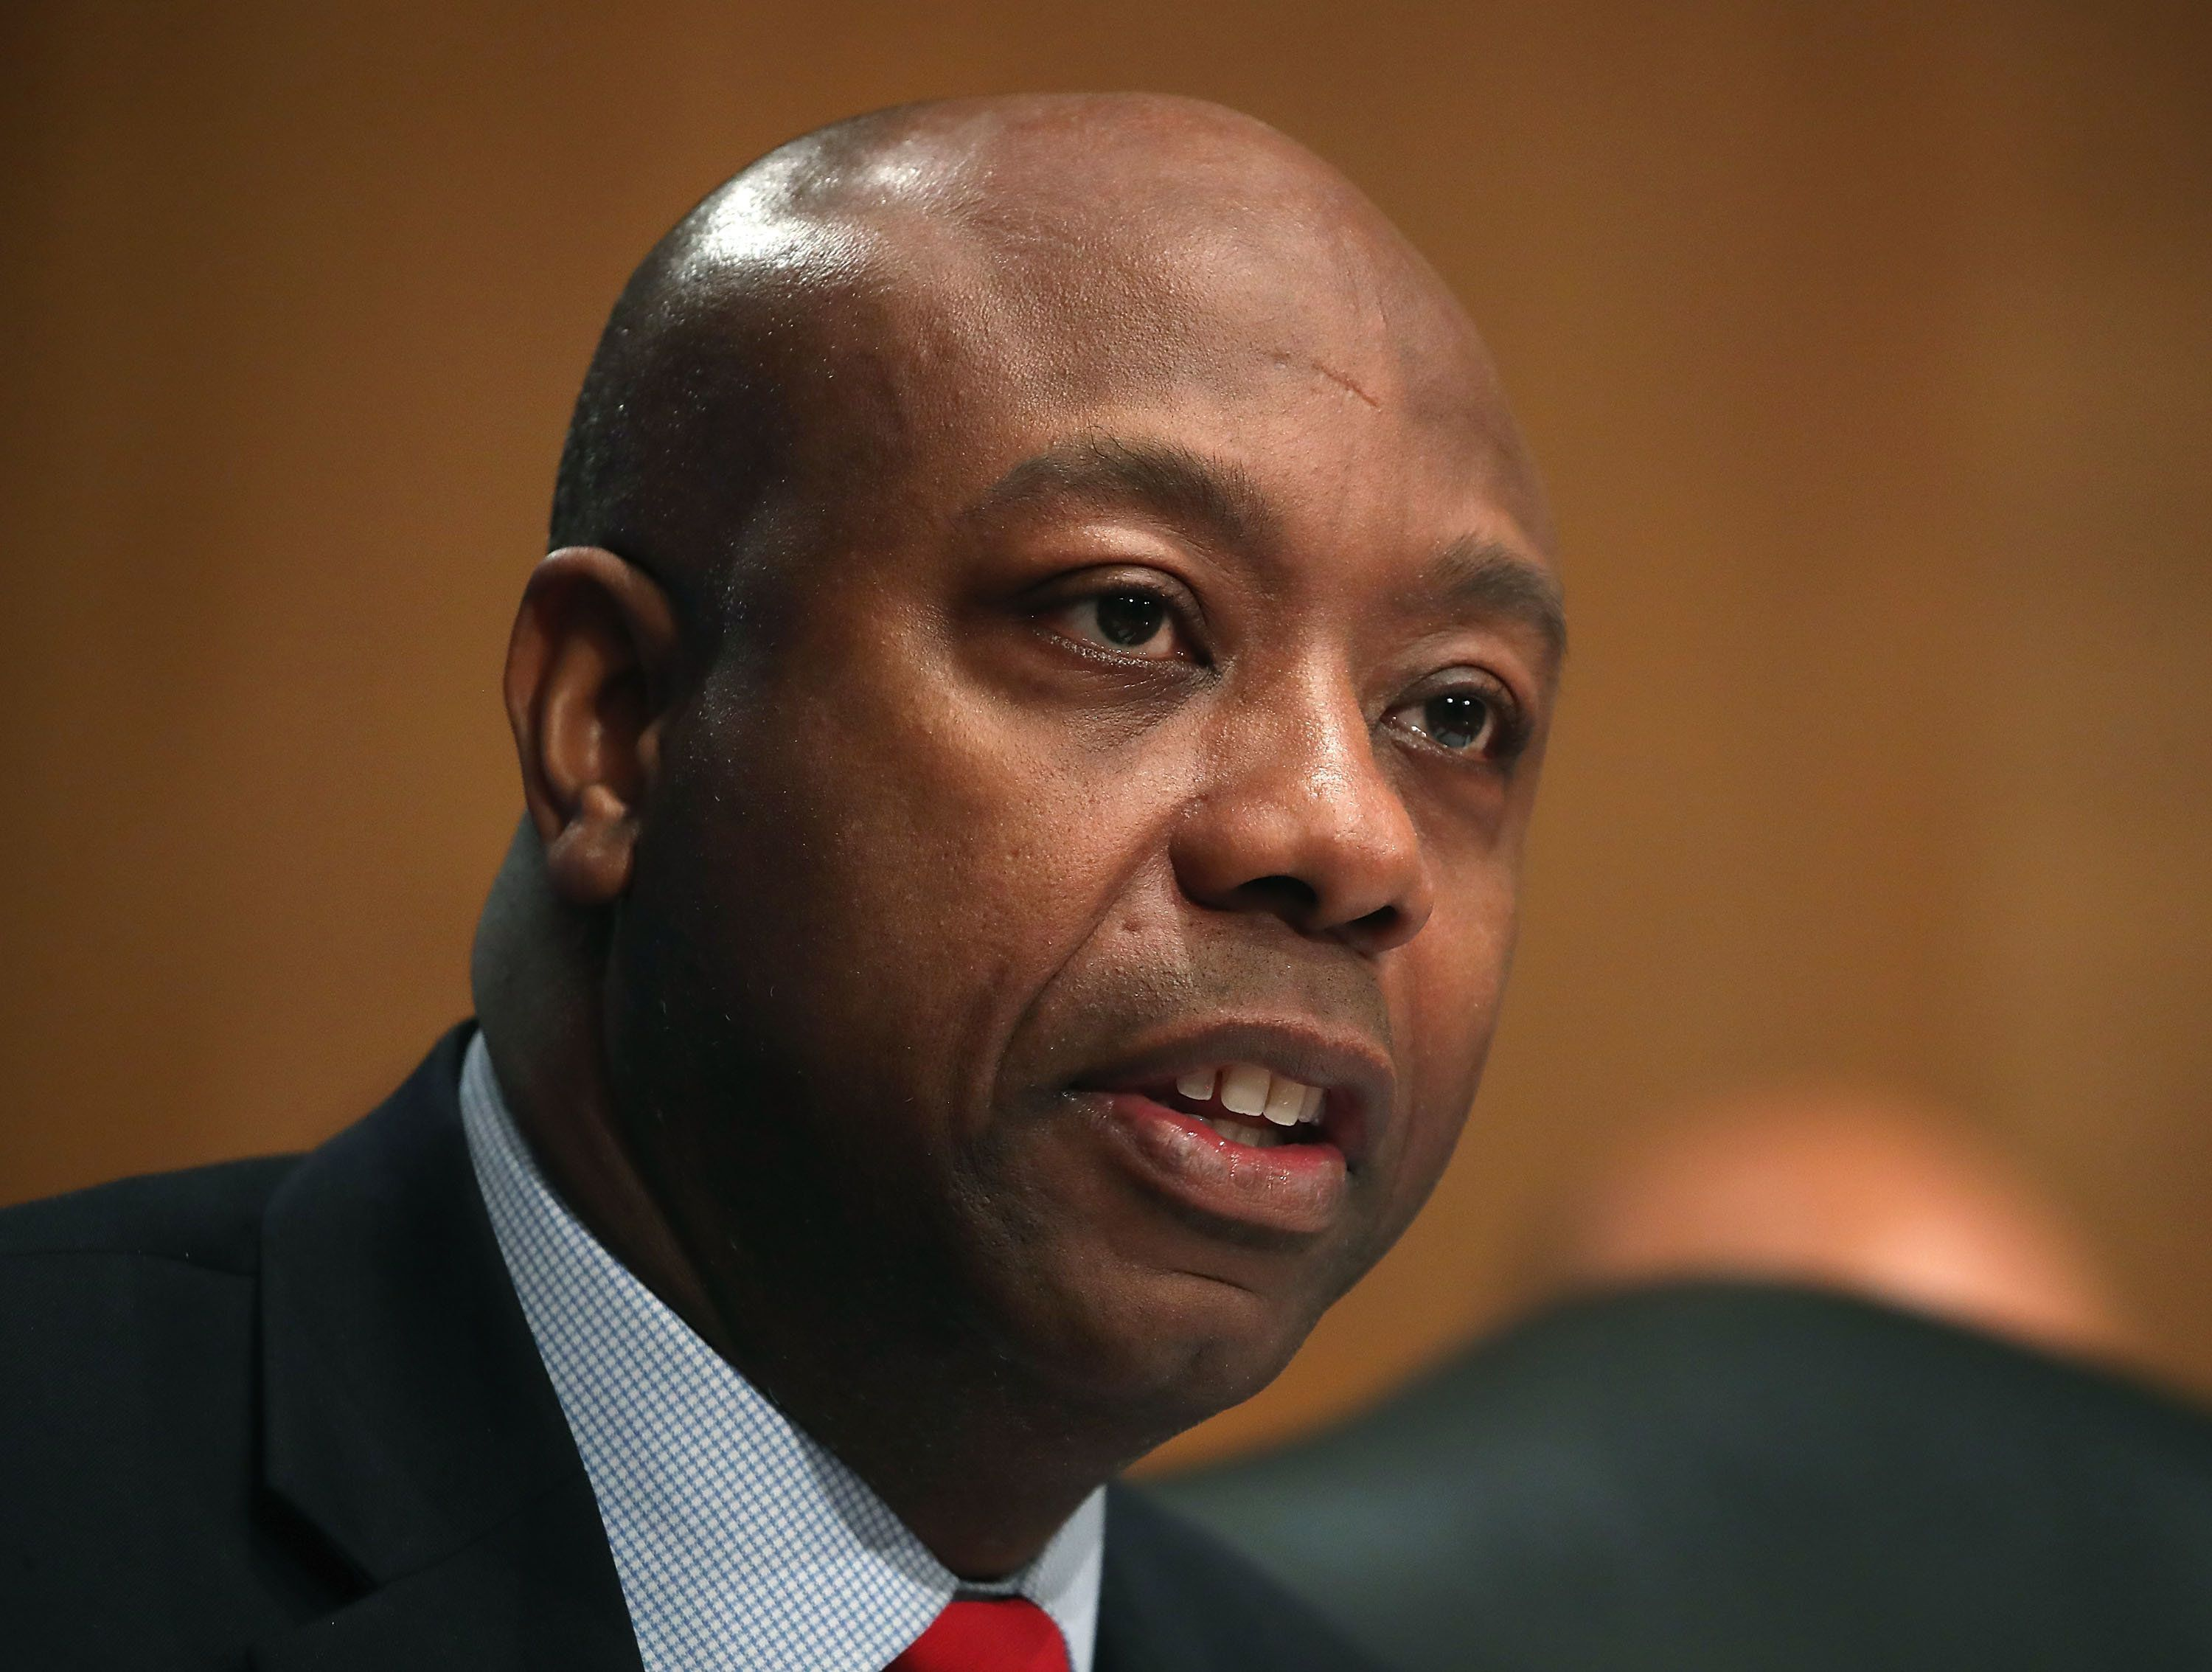 WASHINGTON, DC - OCTOBER 04:  Sen. Tim Scott (R-SC) questions former Equifax CEO Richard Smith during a Senate Banking, Housing and Urban Affairs Committee hearing in the Hart Senate Office Building on Capitol Hill October 4, 2017 in Washington, DC. Smith stepped down as CEO of Equifax last month after it was reported that hackers broke into the credit reporting agency and made off with the personal information of nearly 145 million Americans.  (Photo by Mark Wilson/Getty Images)